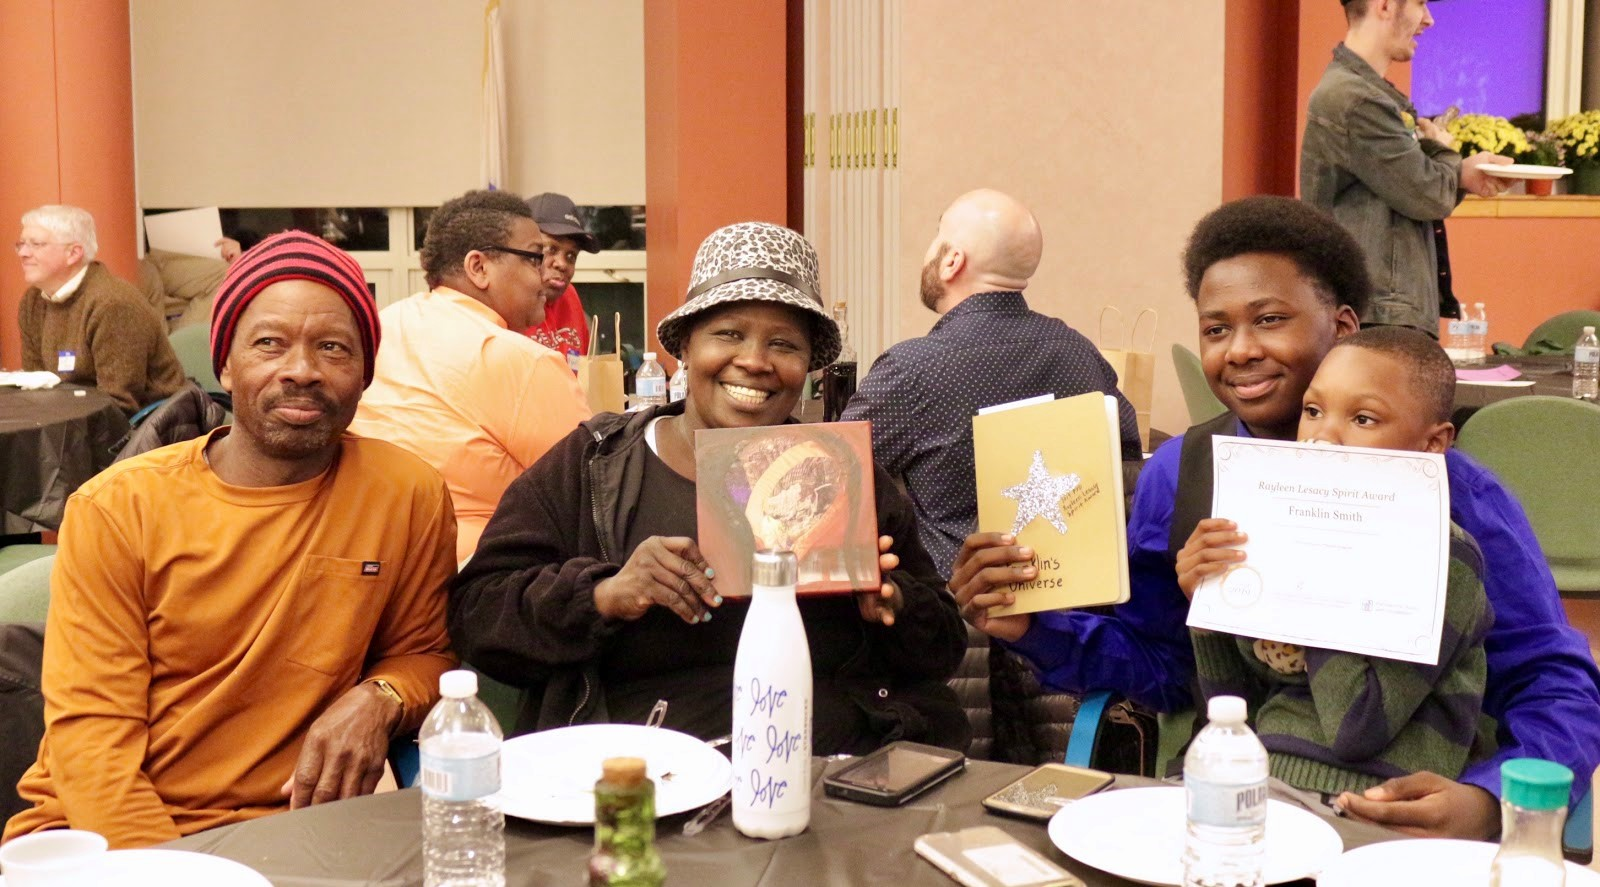 Photo of spirit award winner Franklin and three of his family members pose for a photo smiling and holding up Franklin's certificate as they sit down at a table